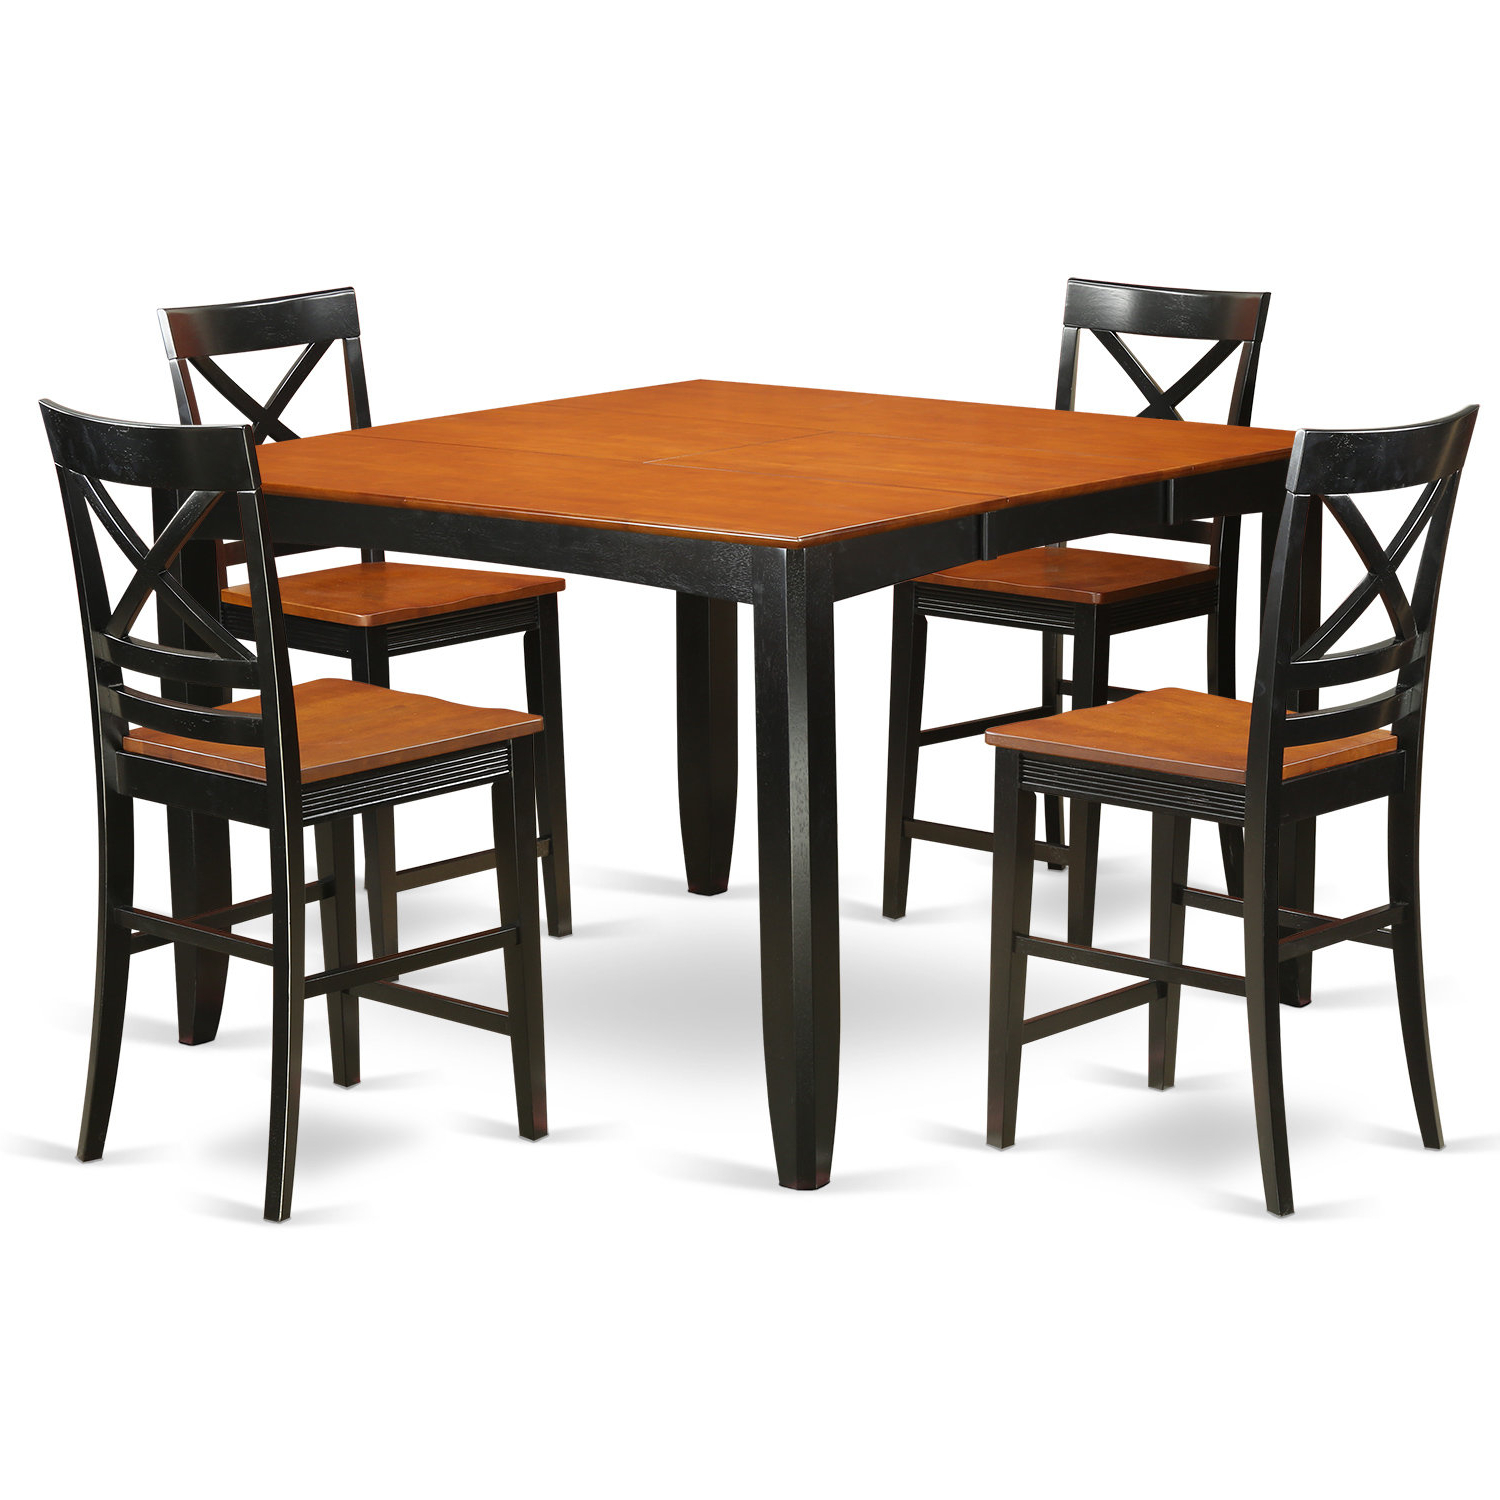 Birch Lane Throughout Weatherholt Dining Tables (View 6 of 25)